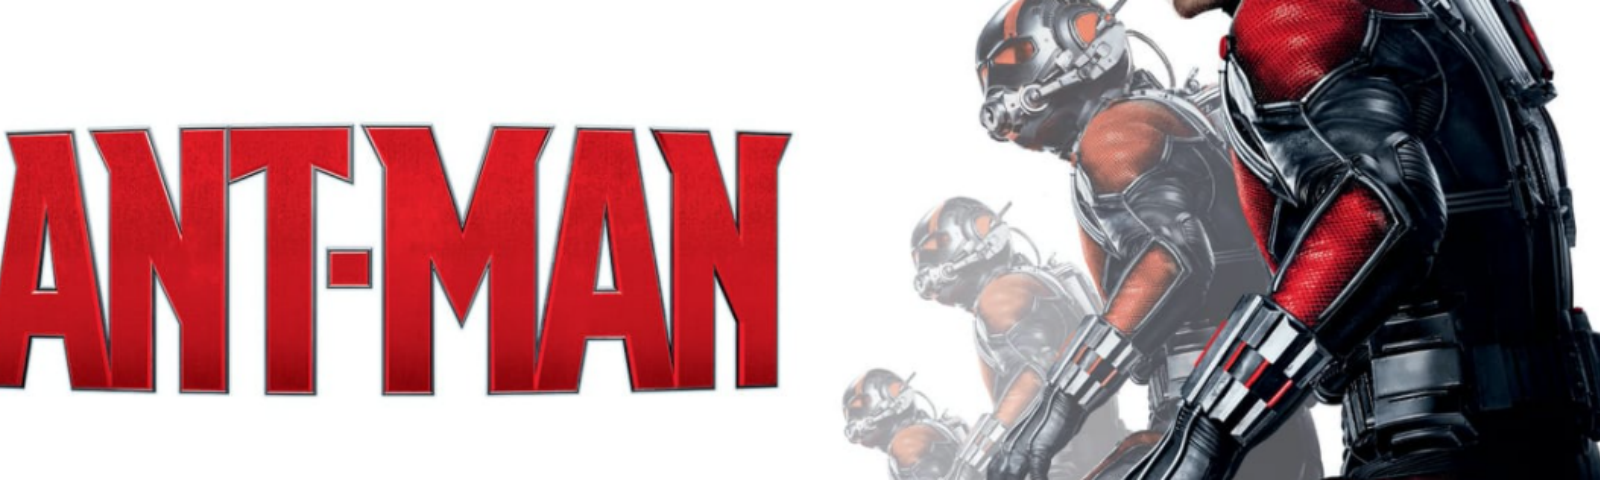 Ant Man And The Wasp 2015 Full Movie Streaming Ant Man 2015 Online